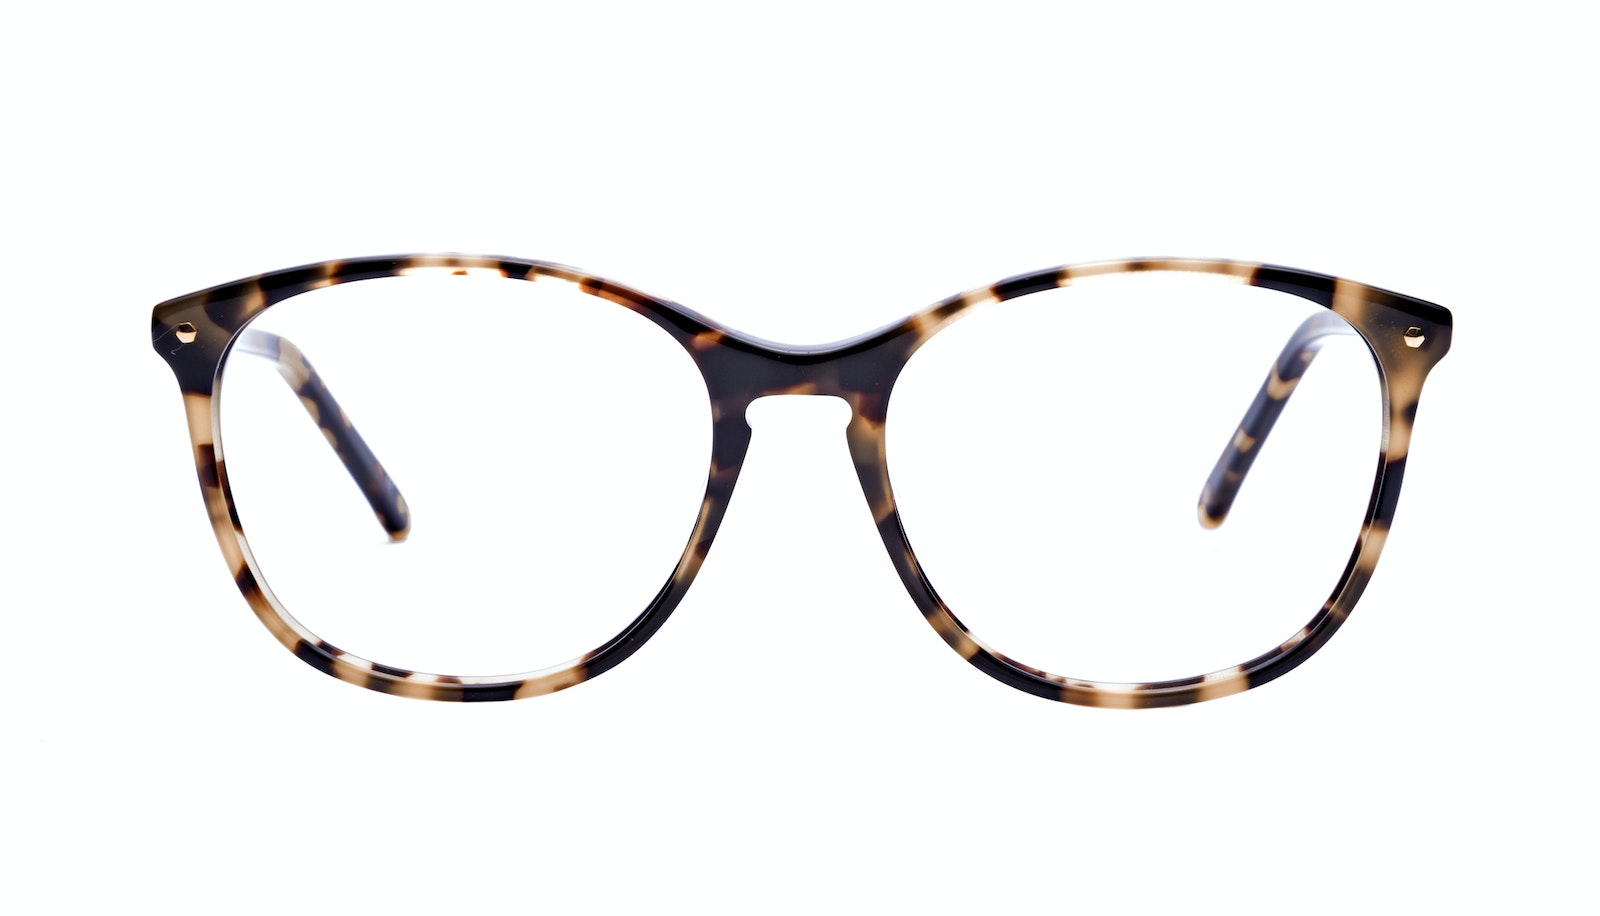 Affordable Fashion Glasses Rectangle Square Round Eyeglasses Women Nadine Bingal